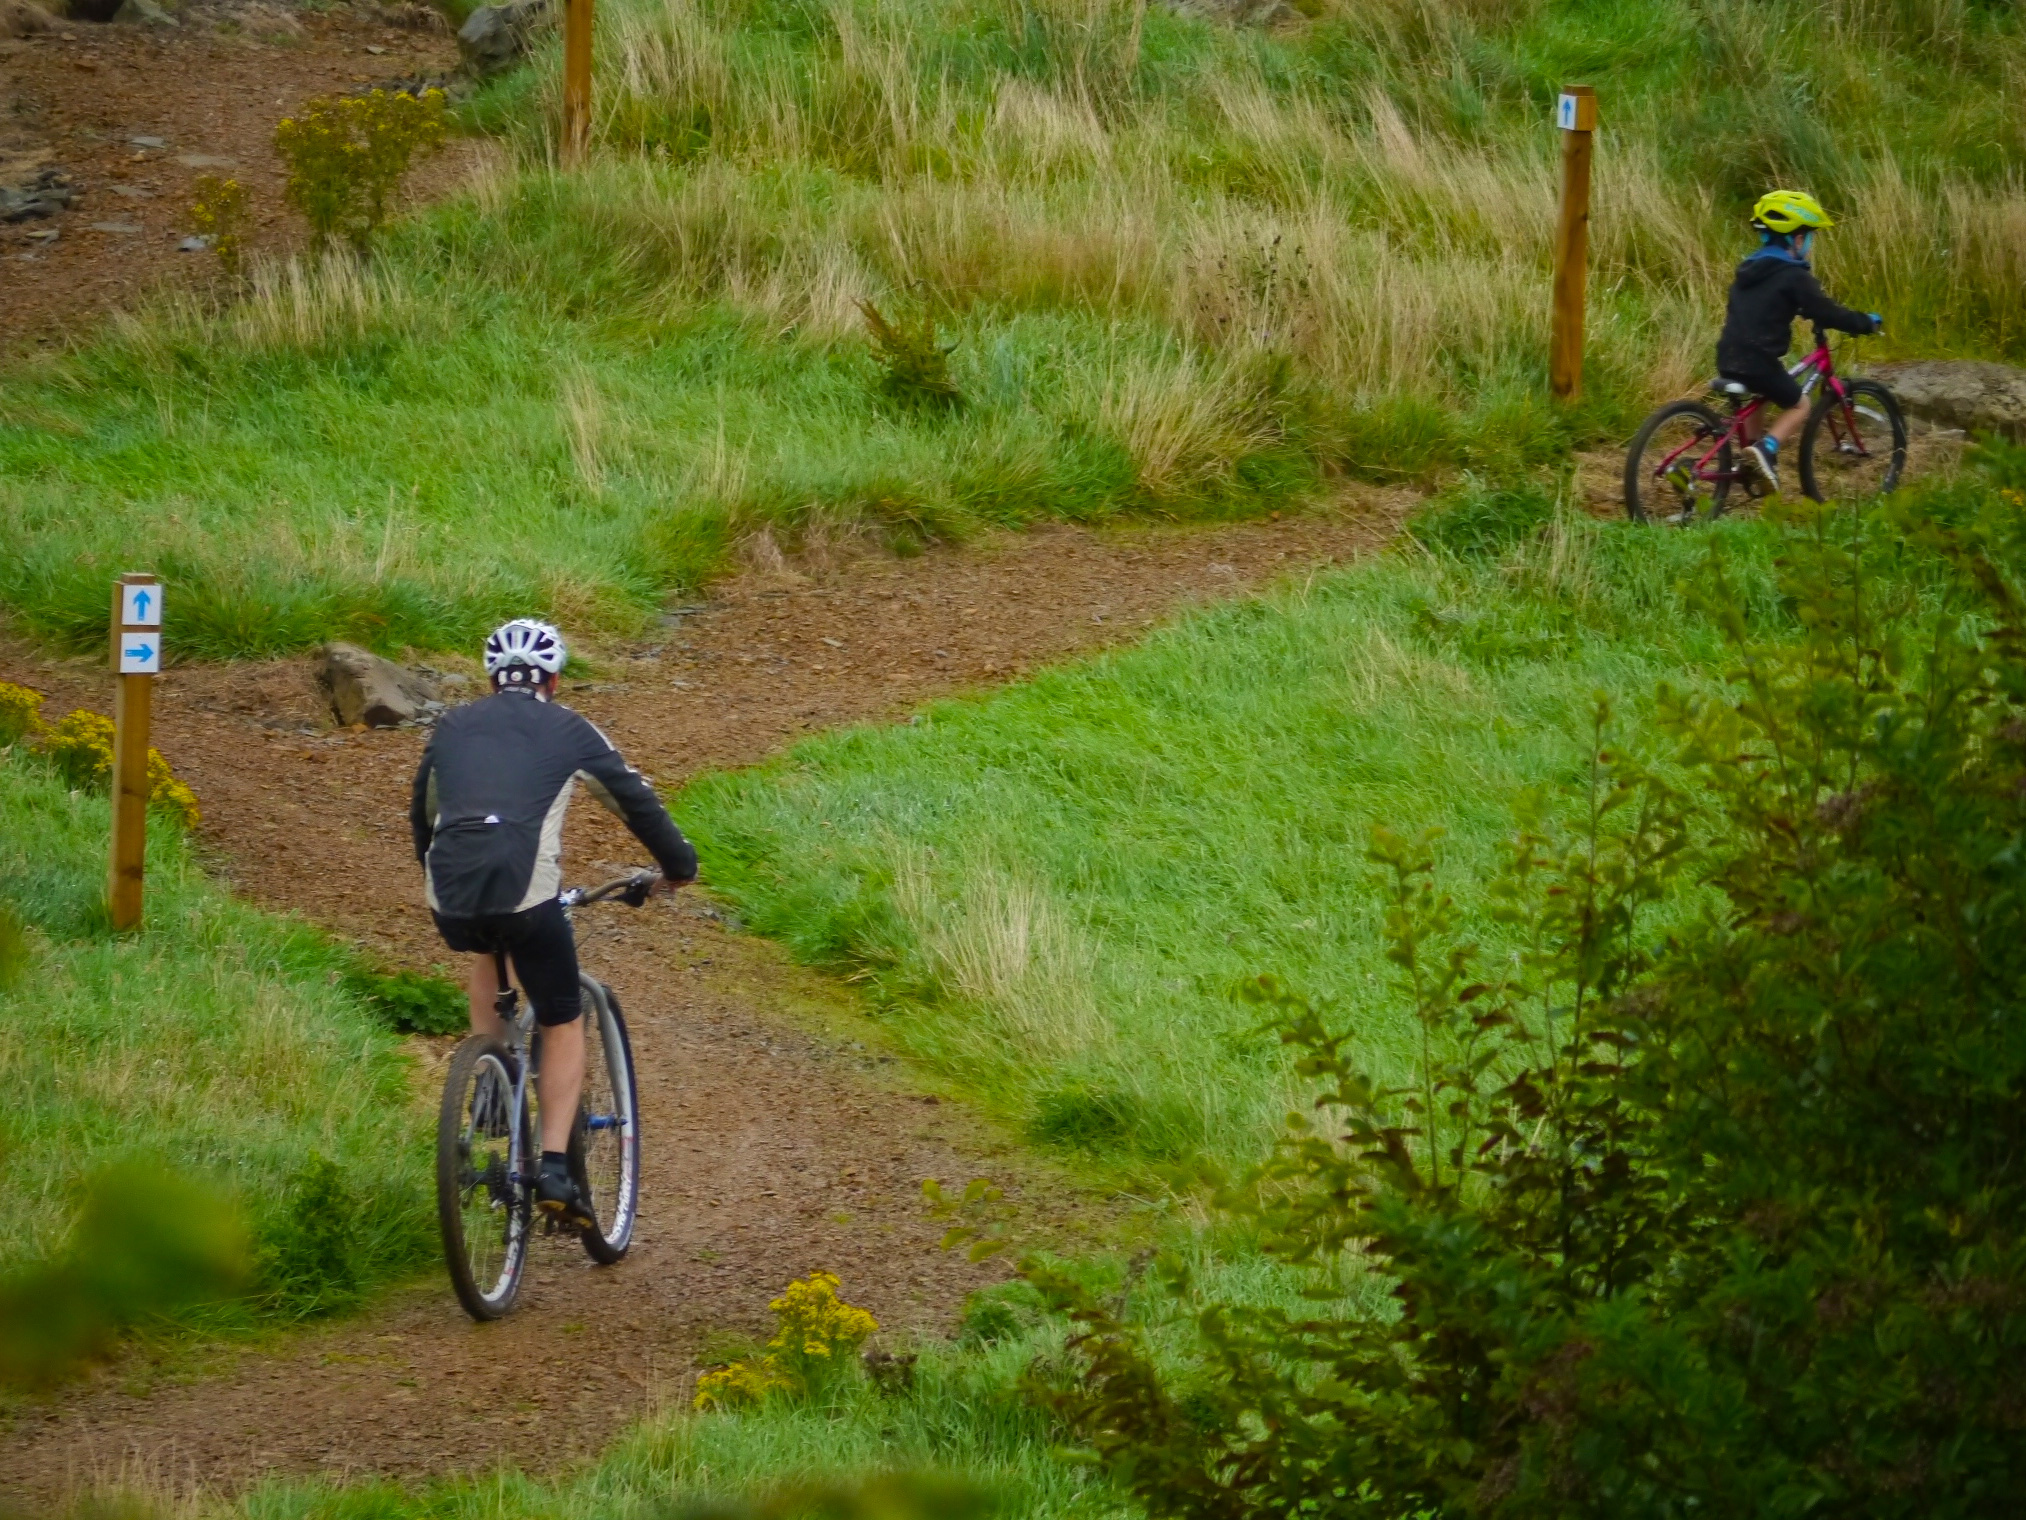 Test your skills on our mountain bike trails